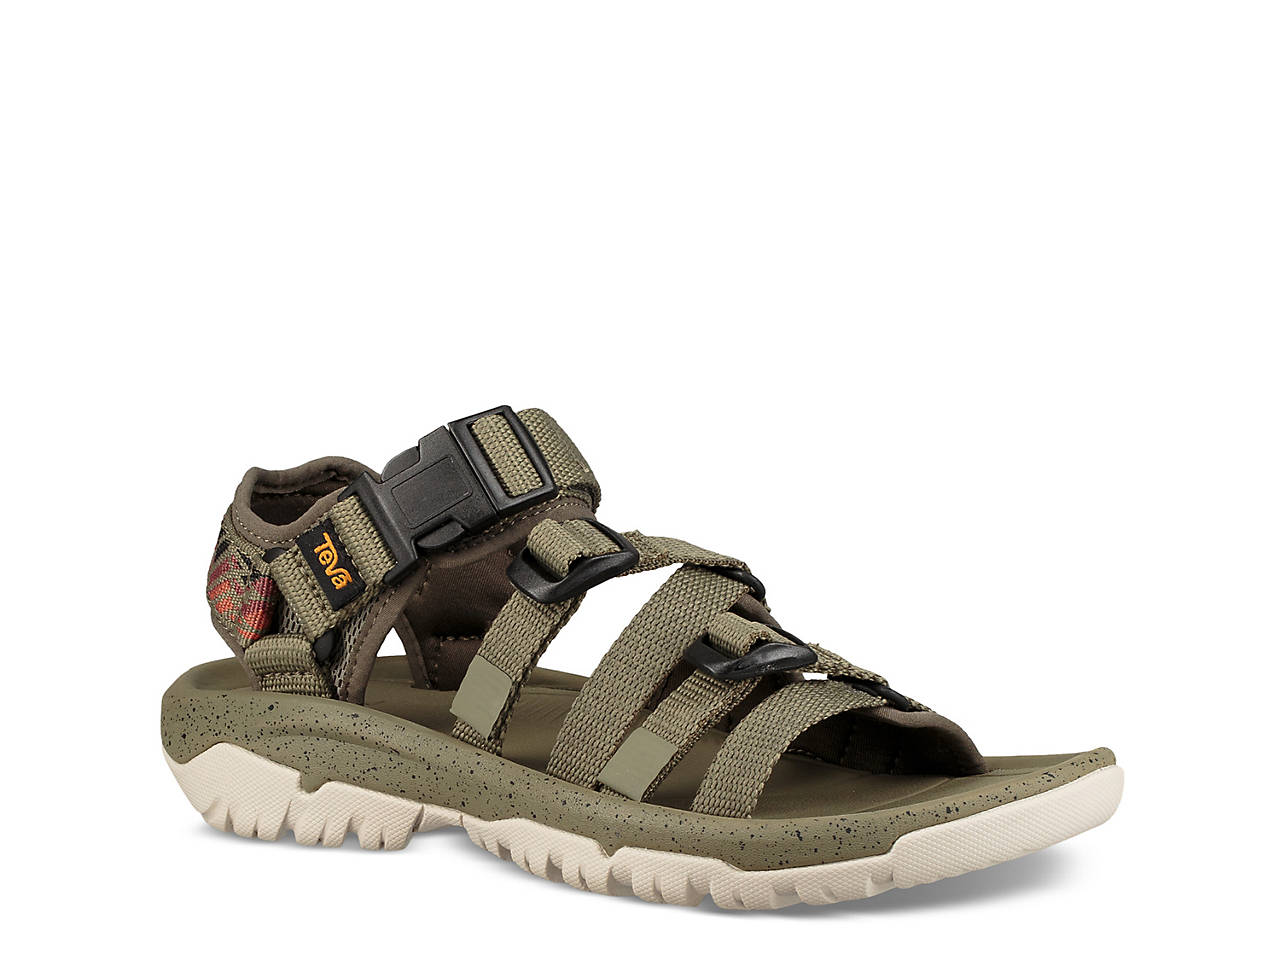 130bd8feb99b Teva Hurricane XLT2 ALP Sandal Women s Shoes